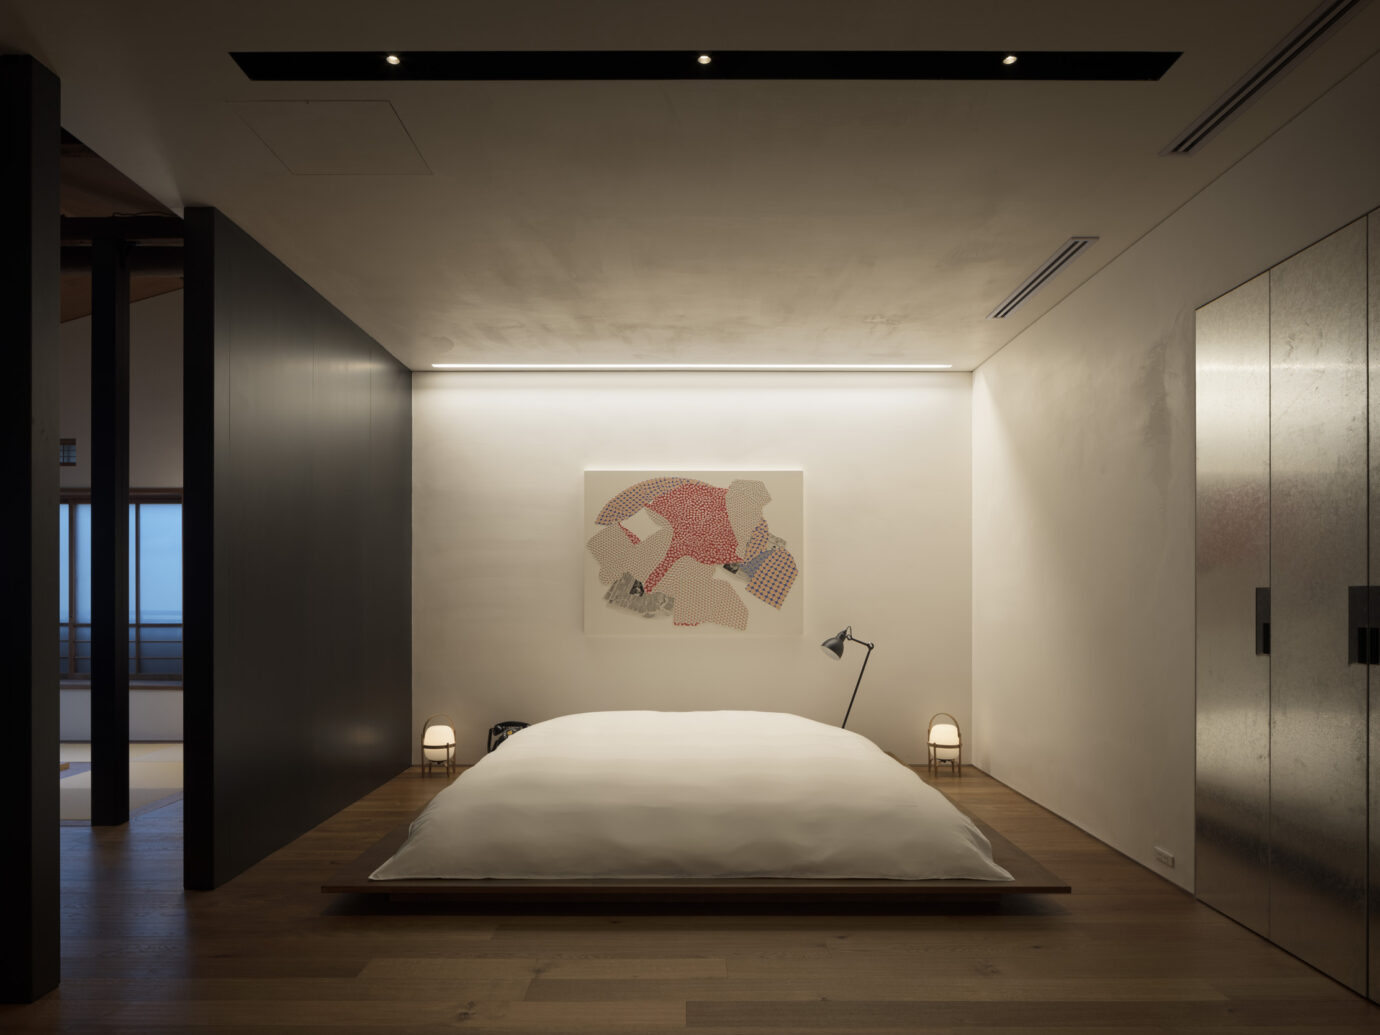 Bedroom at Trunk House in Tokyo